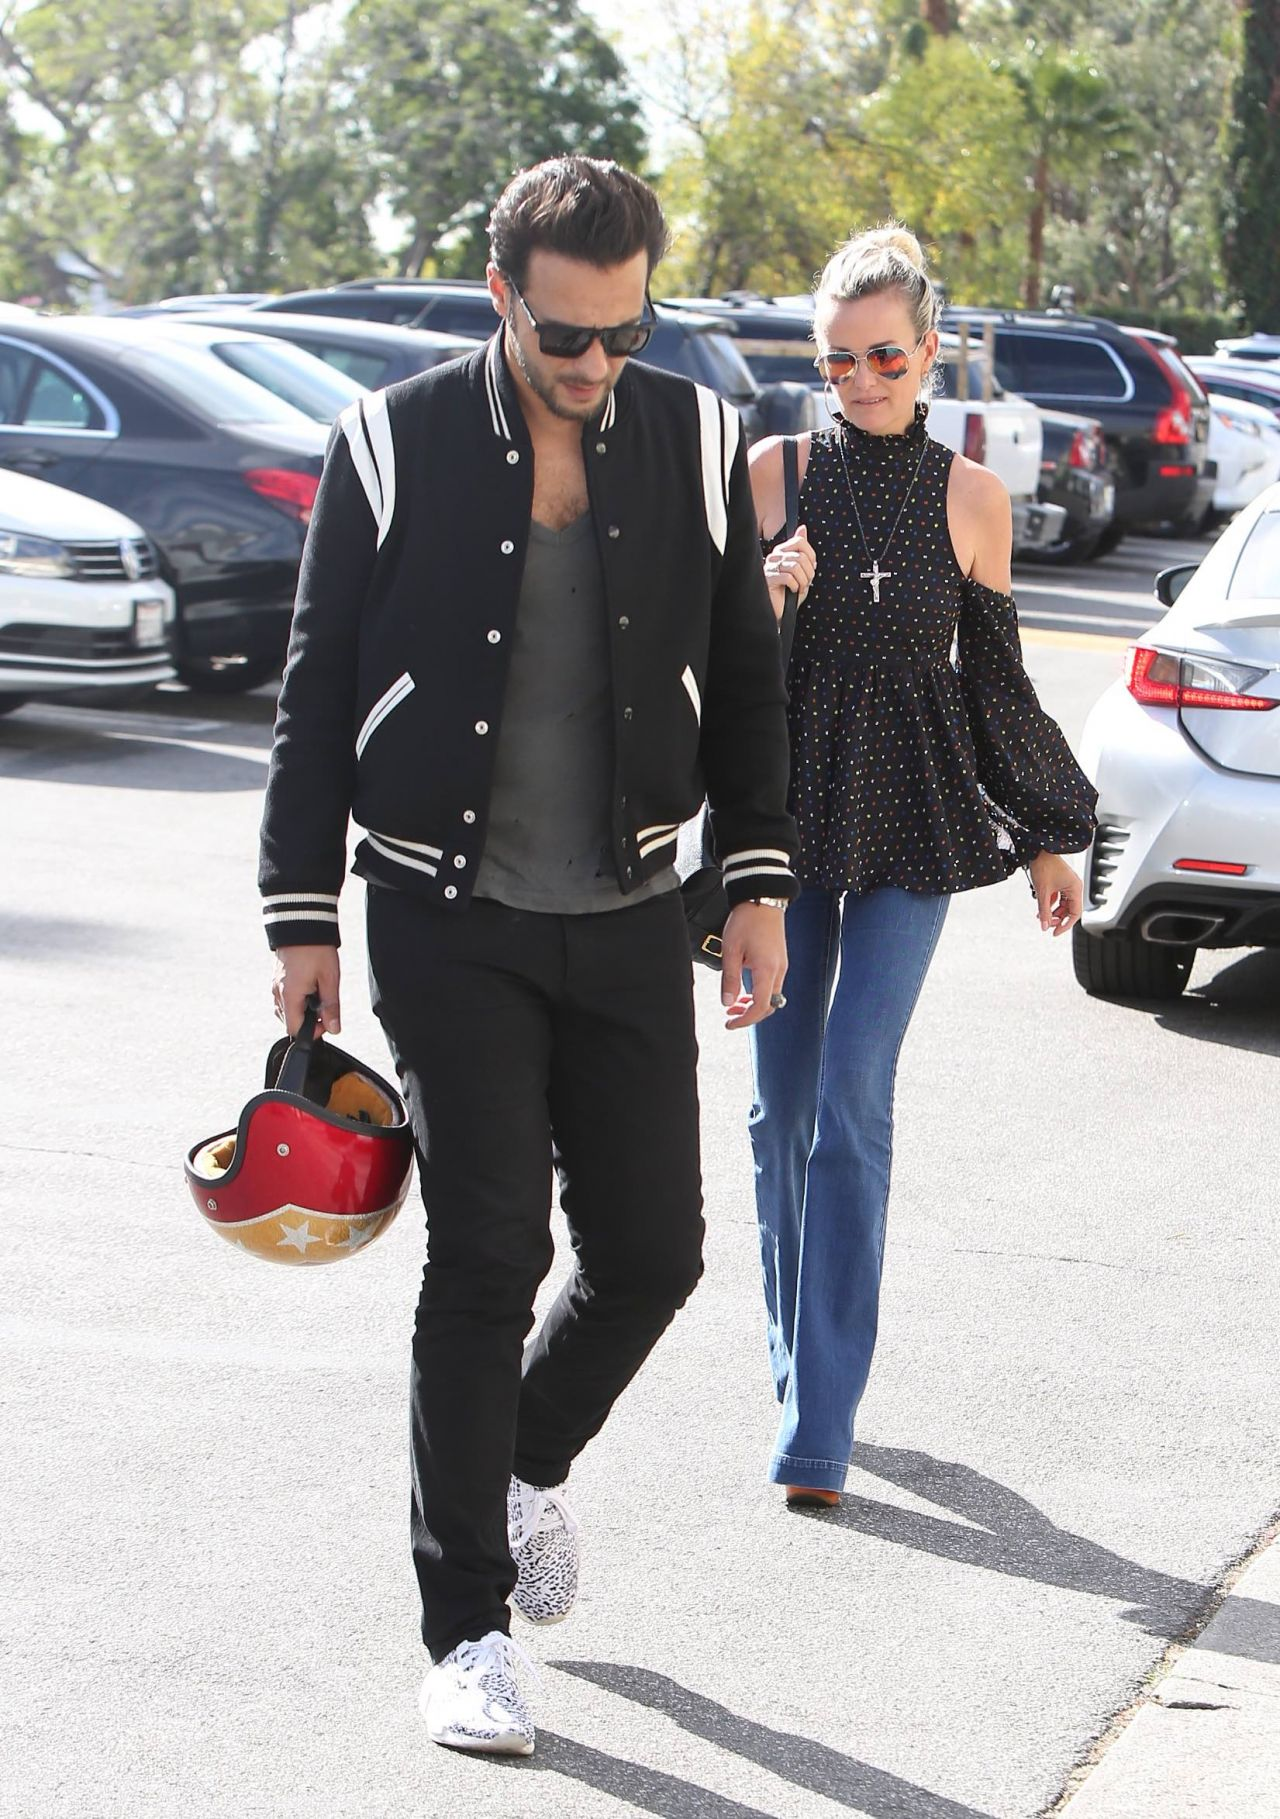 Laeticia Hallyday With Younger Male Friend Out In